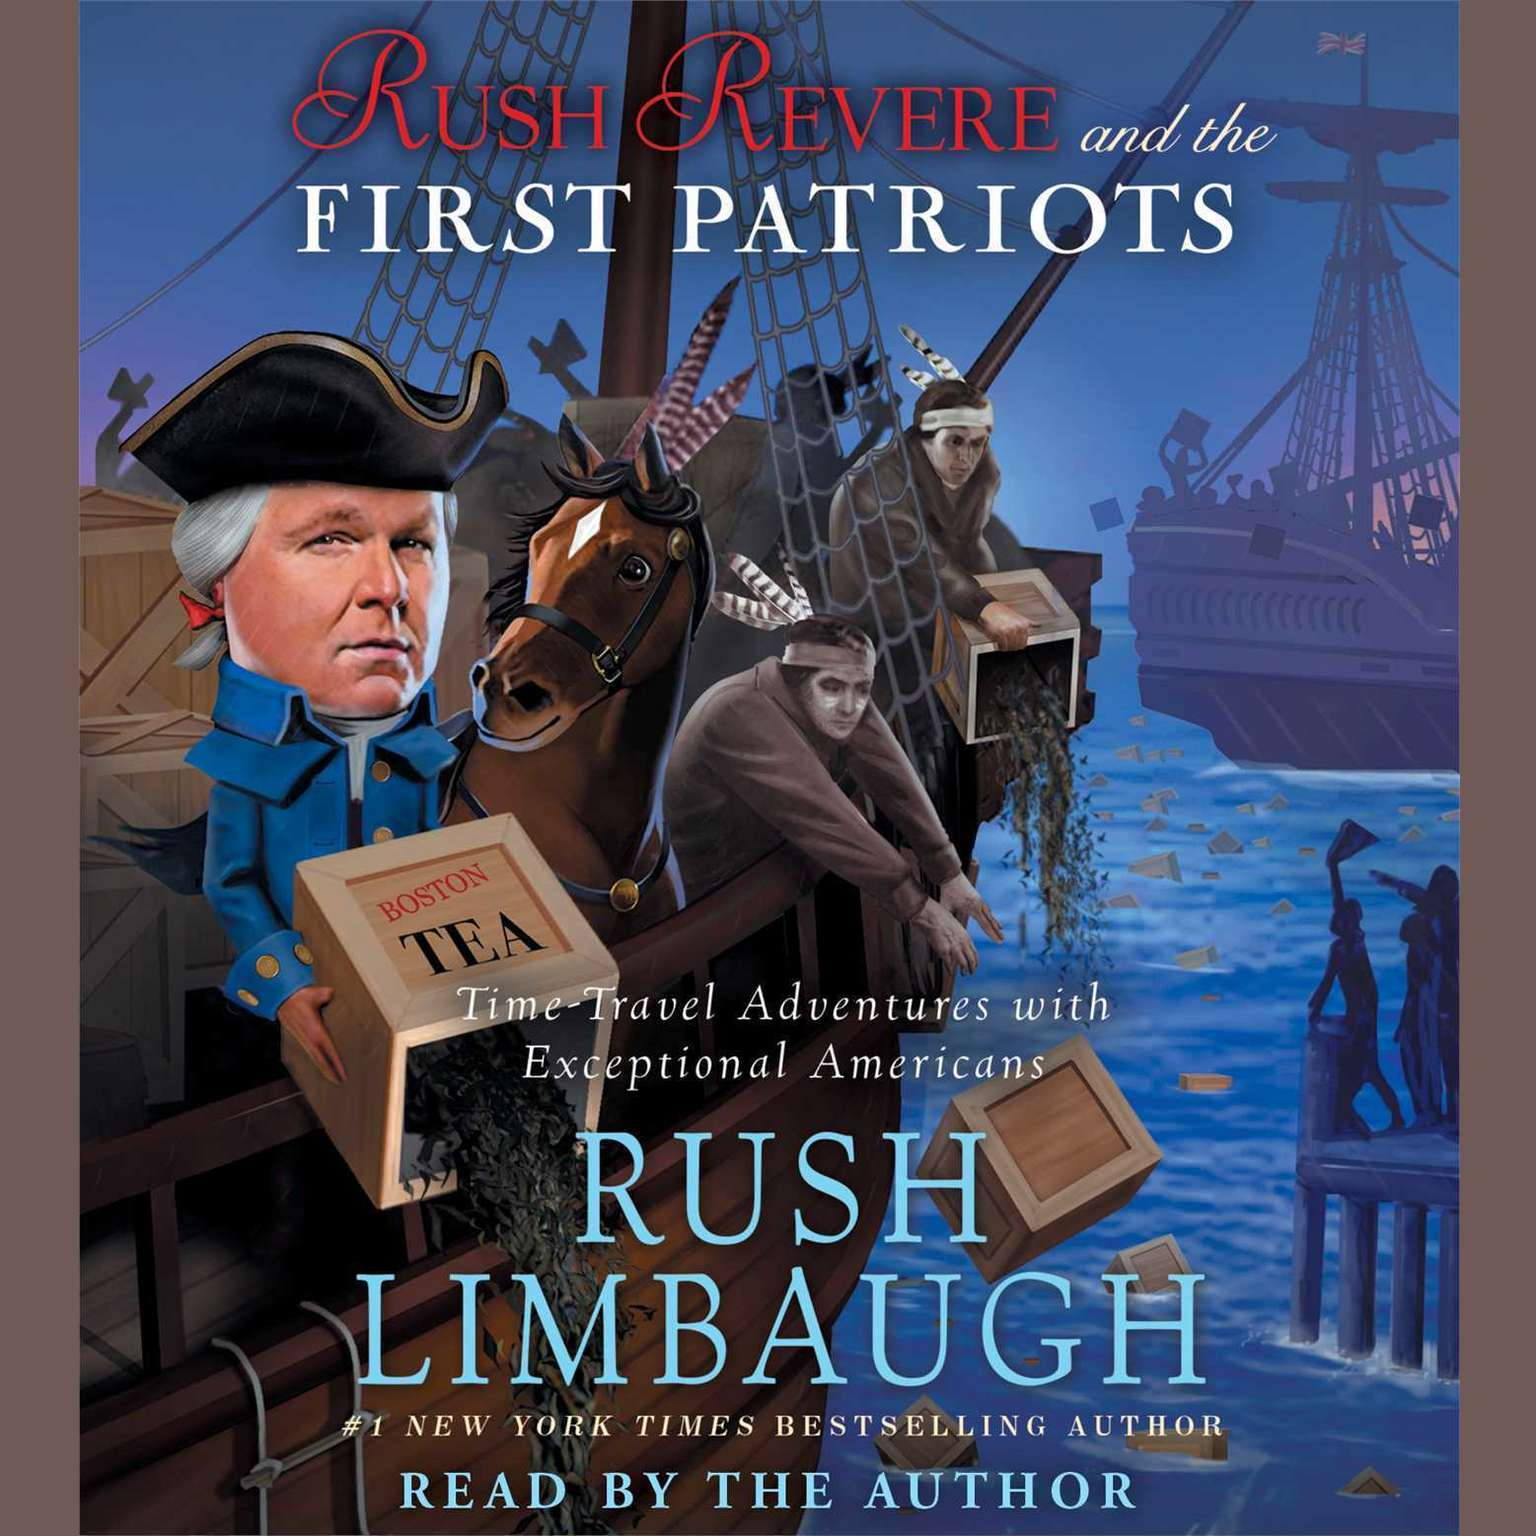 Printable Rush Revere and the First Patriots: Time-Travel Adventures With Exceptional Americans Audiobook Cover Art